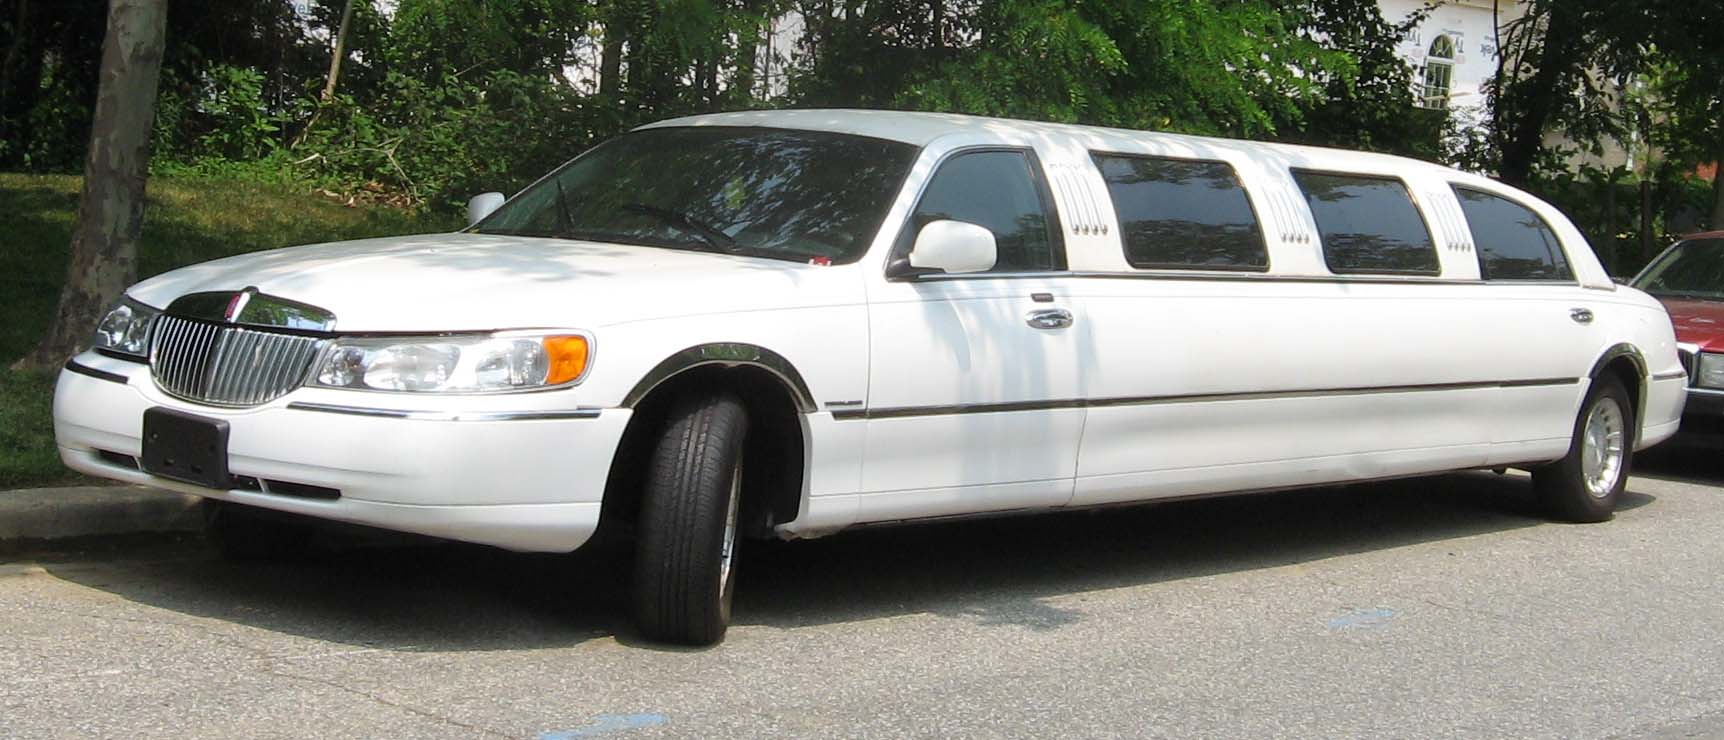 Image 98 02 Lincoln Town Car Limousine Jpg Tractor